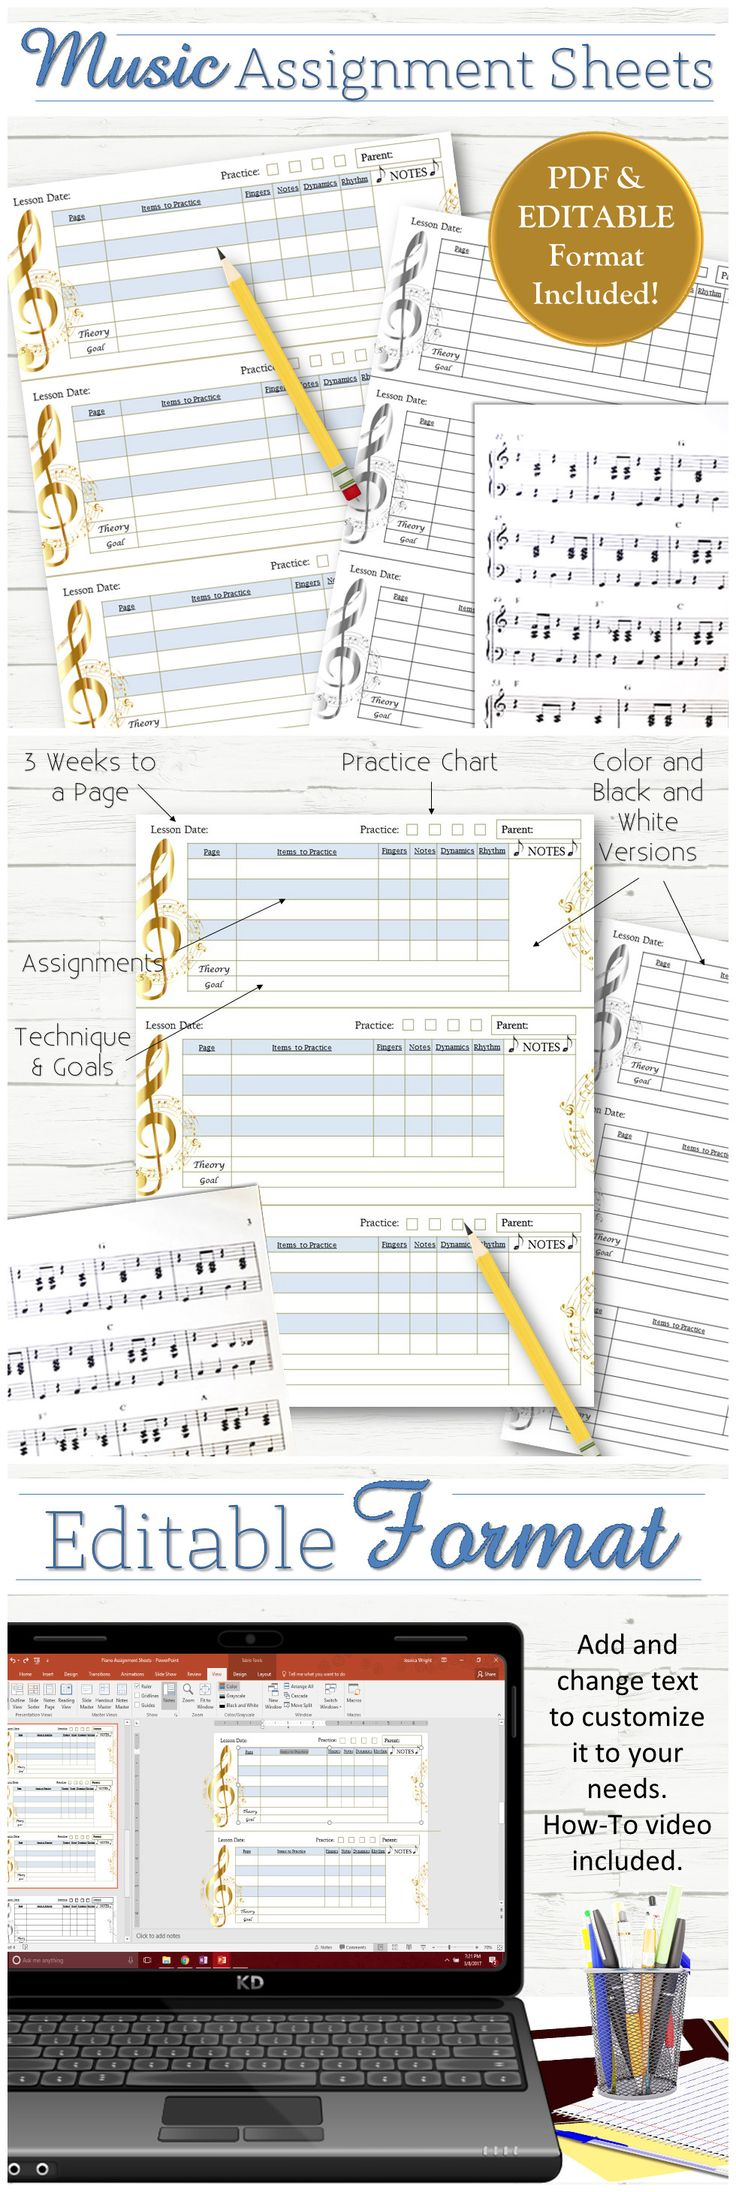 """A simple yet effective editable assignment sheet for music lessons! Each page includes 3 weeks of lessons and plenty of space to track songs, progress, goals, and more! Includes a Colored and Black & White version in PDF and an editable PowerPoint format.  1) Lesson Date 2) Parent Signature 3) Practice Chart 4) Lesson Assignments (with """"pass-off"""" criteria"""") 5) Technique Assignments 6) Notes Section"""